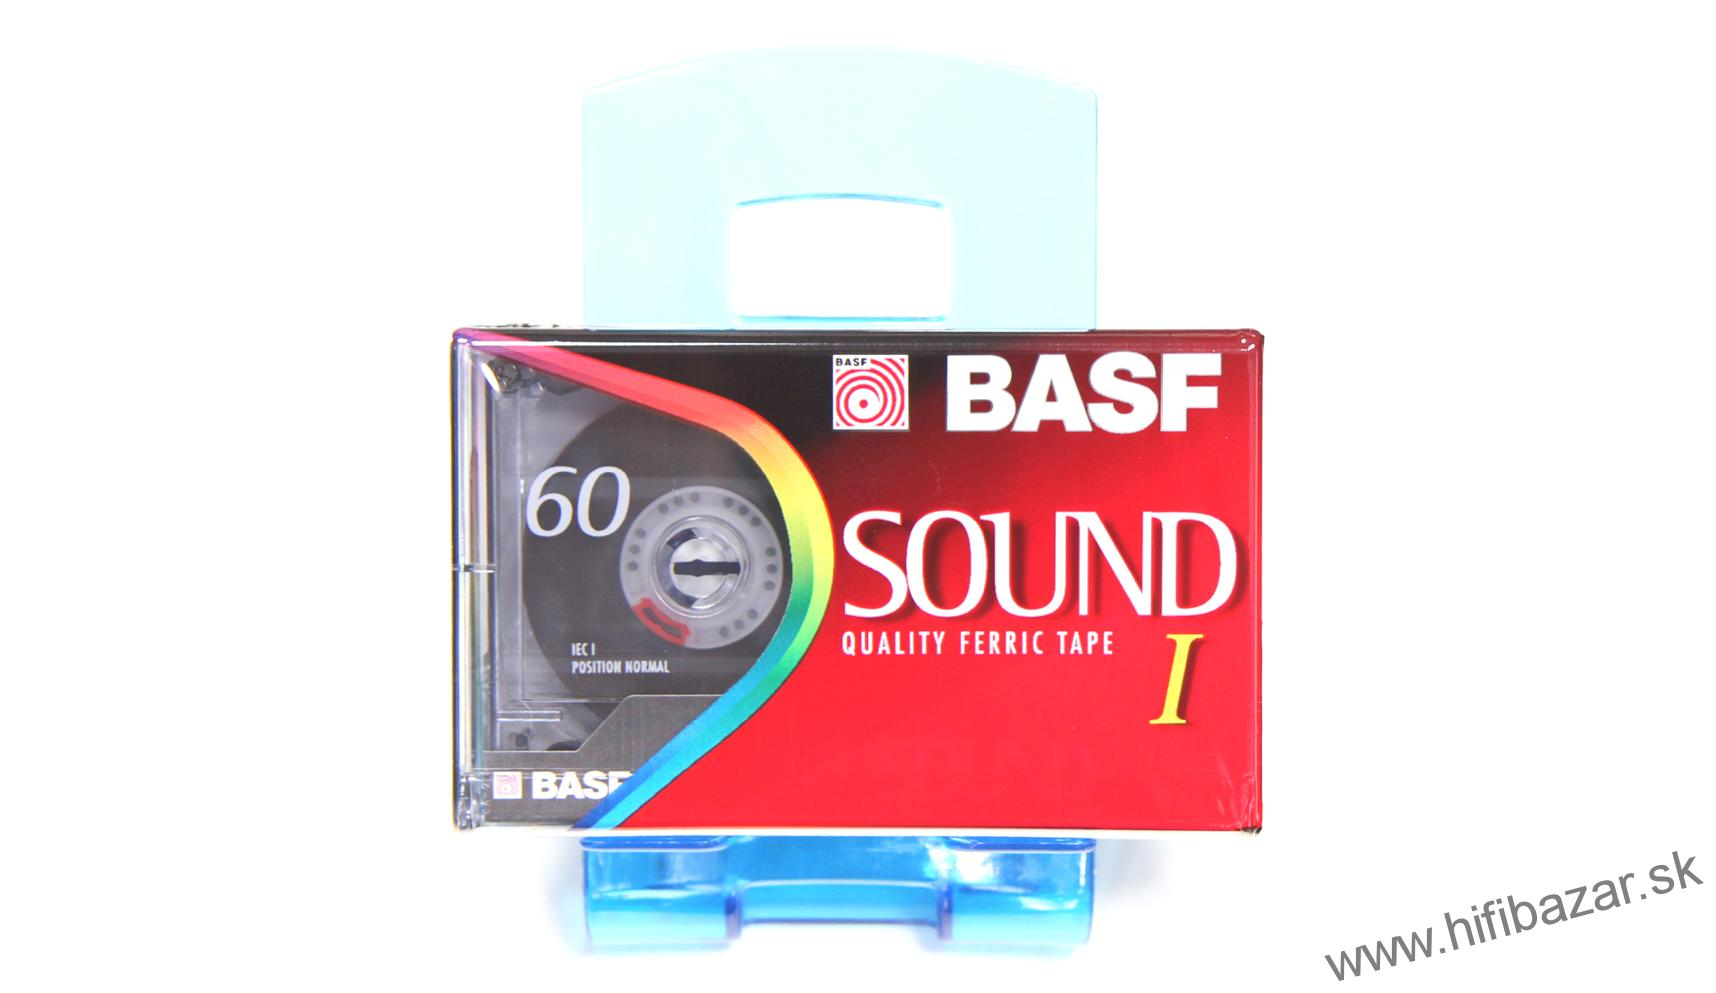 BASF SOUND-60 Position Normal